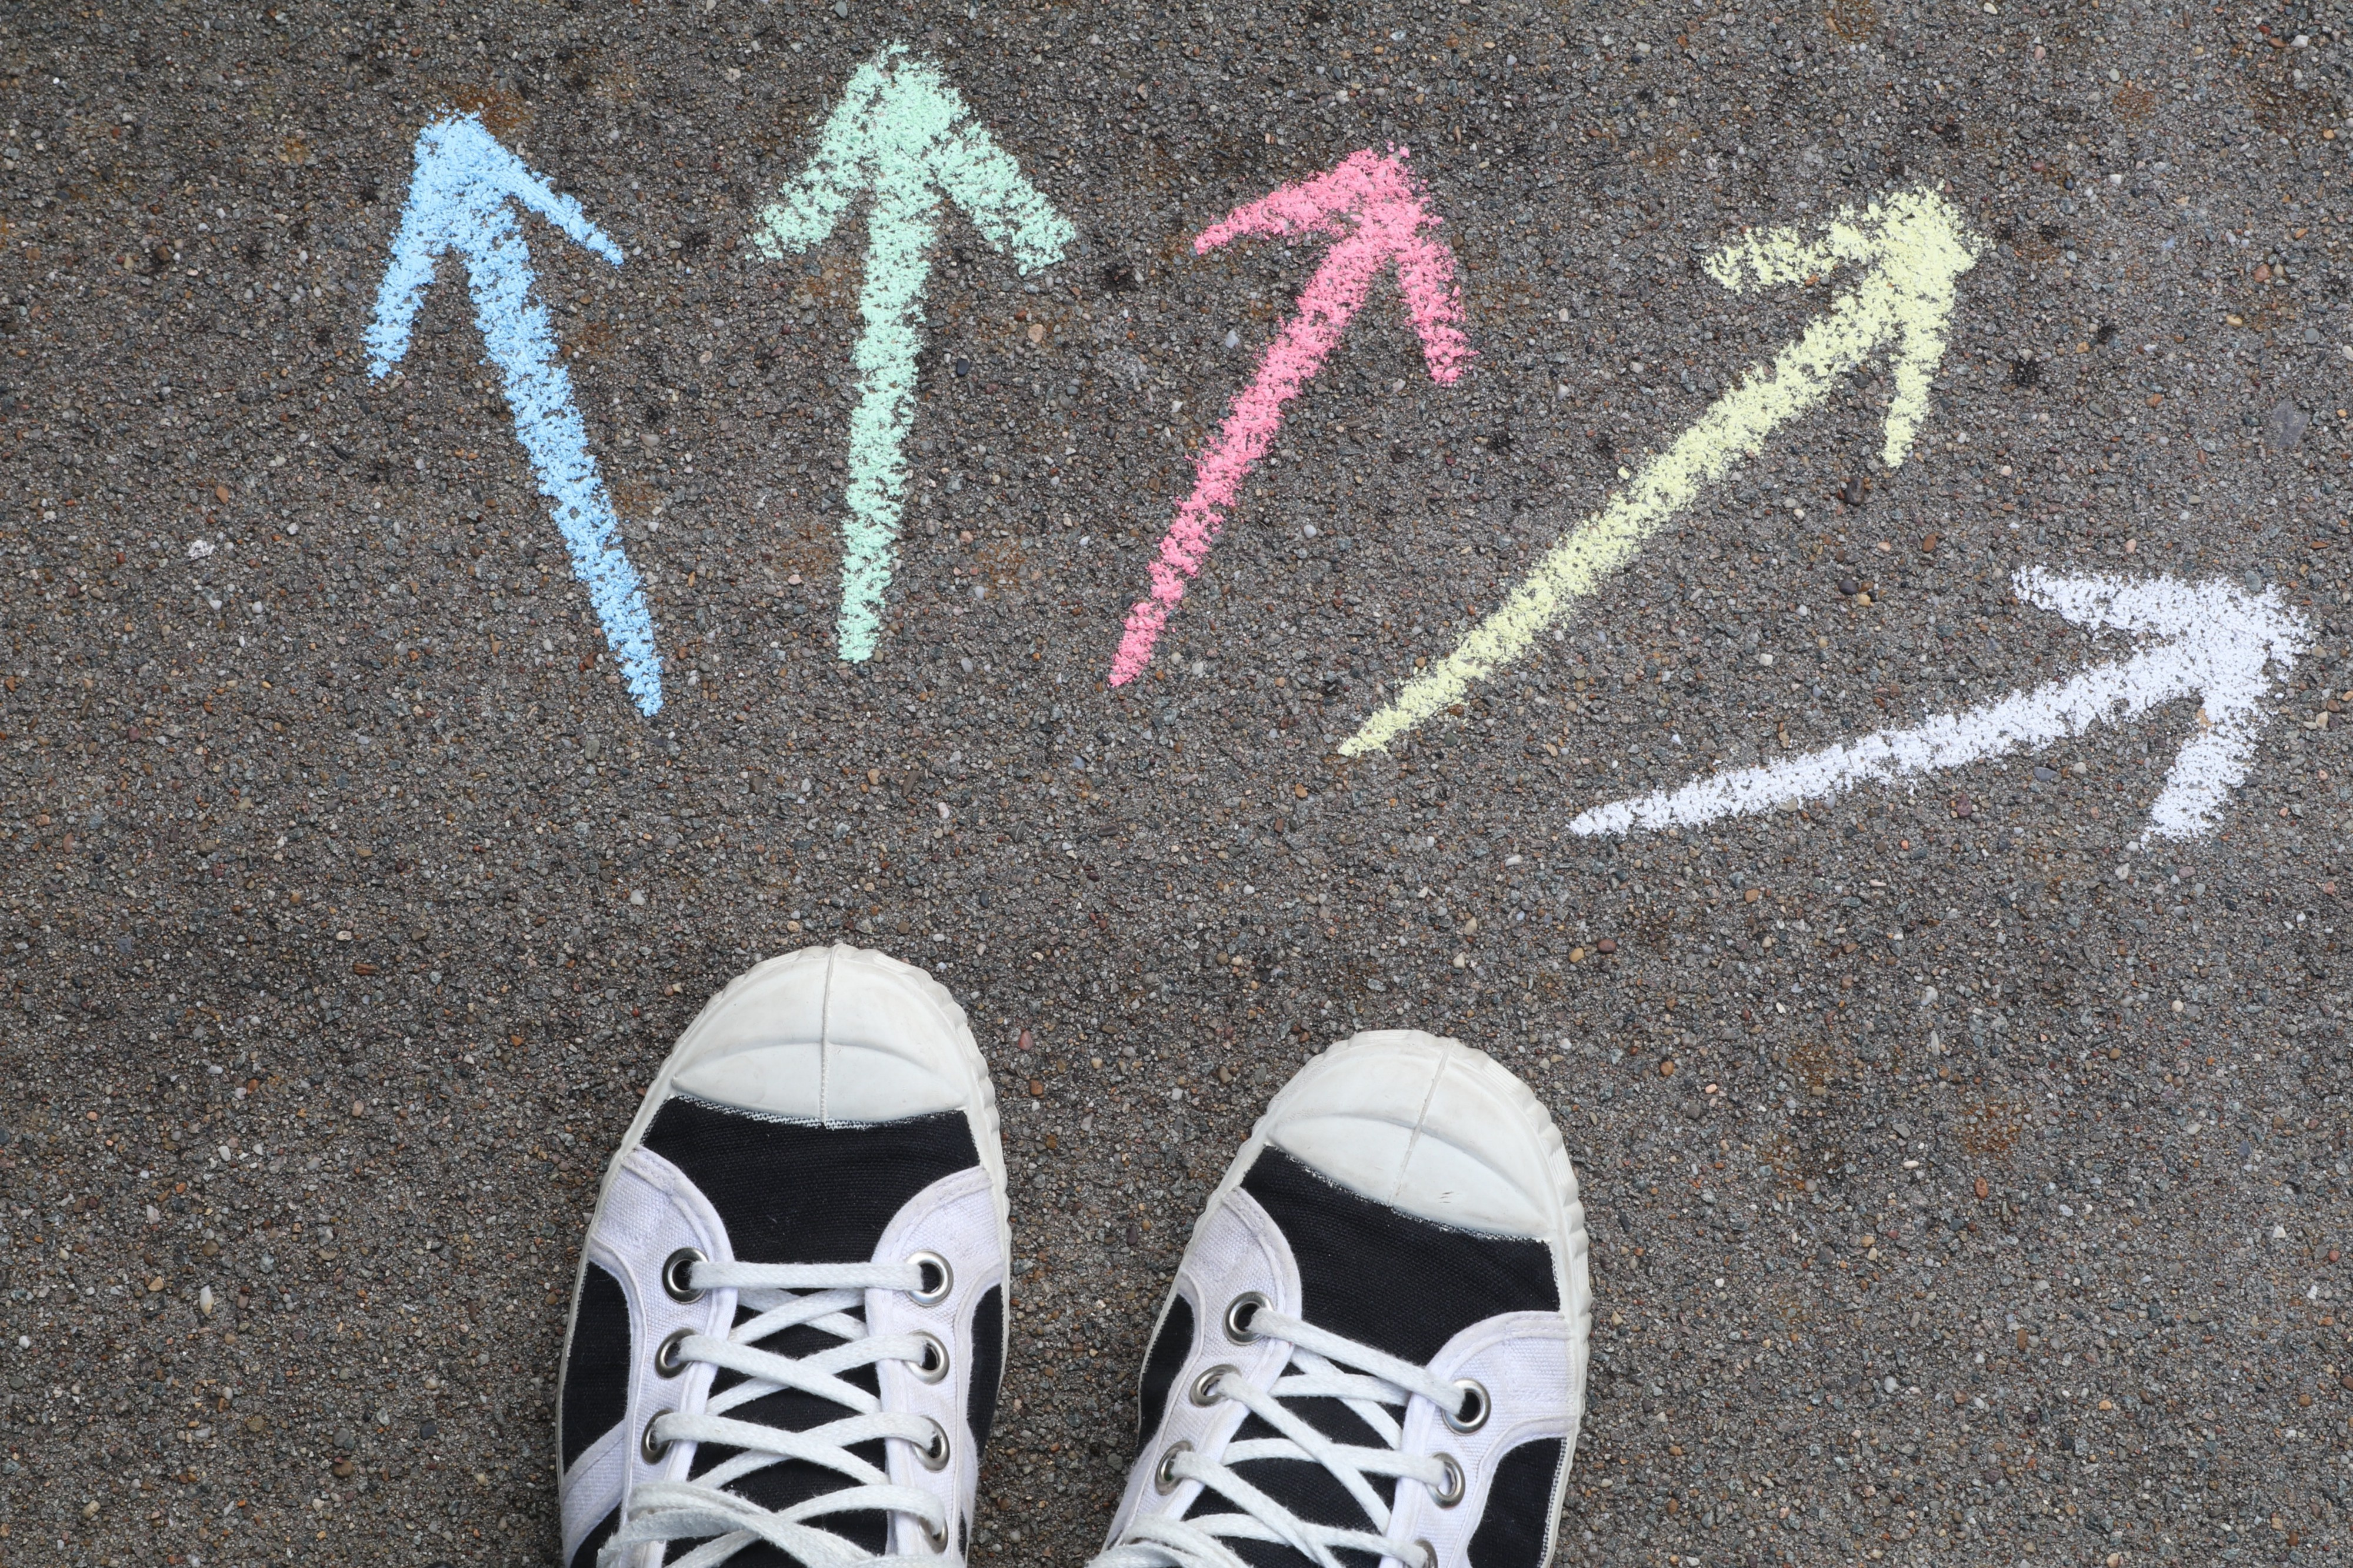 Which way do you go? Arrows pointing 5 different directions in front of sneakers.